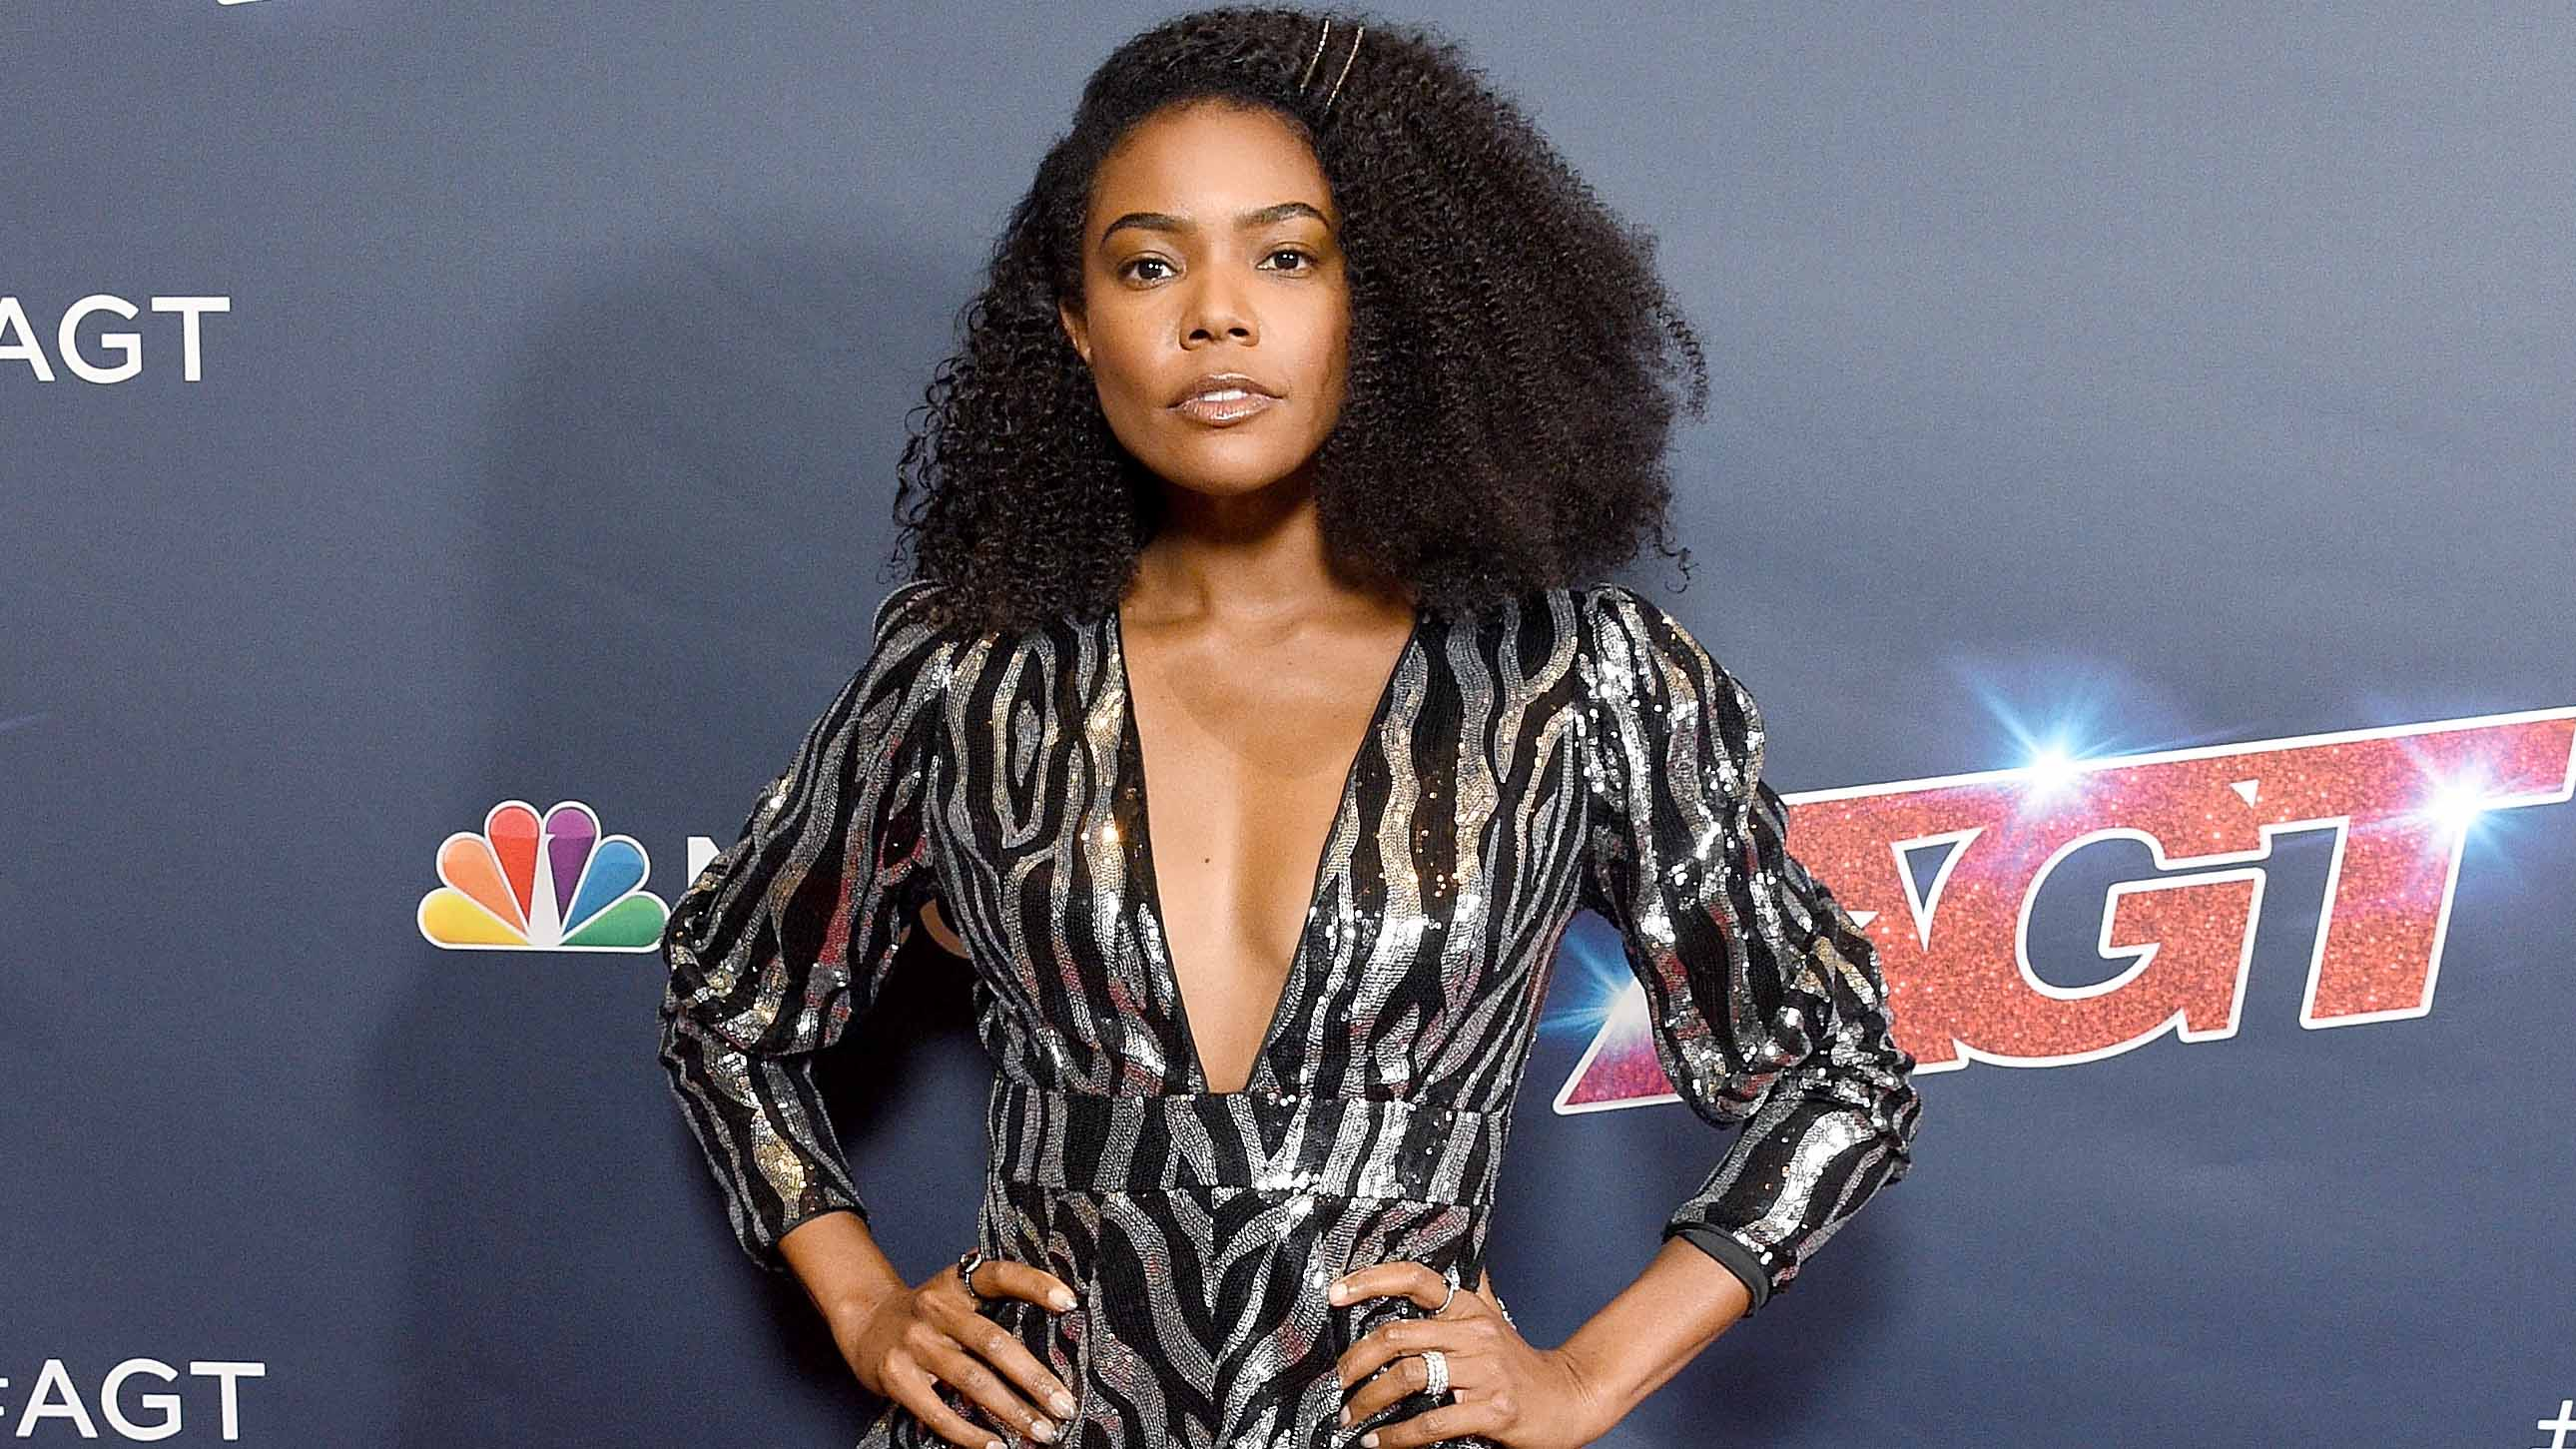 Gabrielle Union Shares Photos of Her 'America's Got Talent' Hairstyles: 'Unapologetically Me'